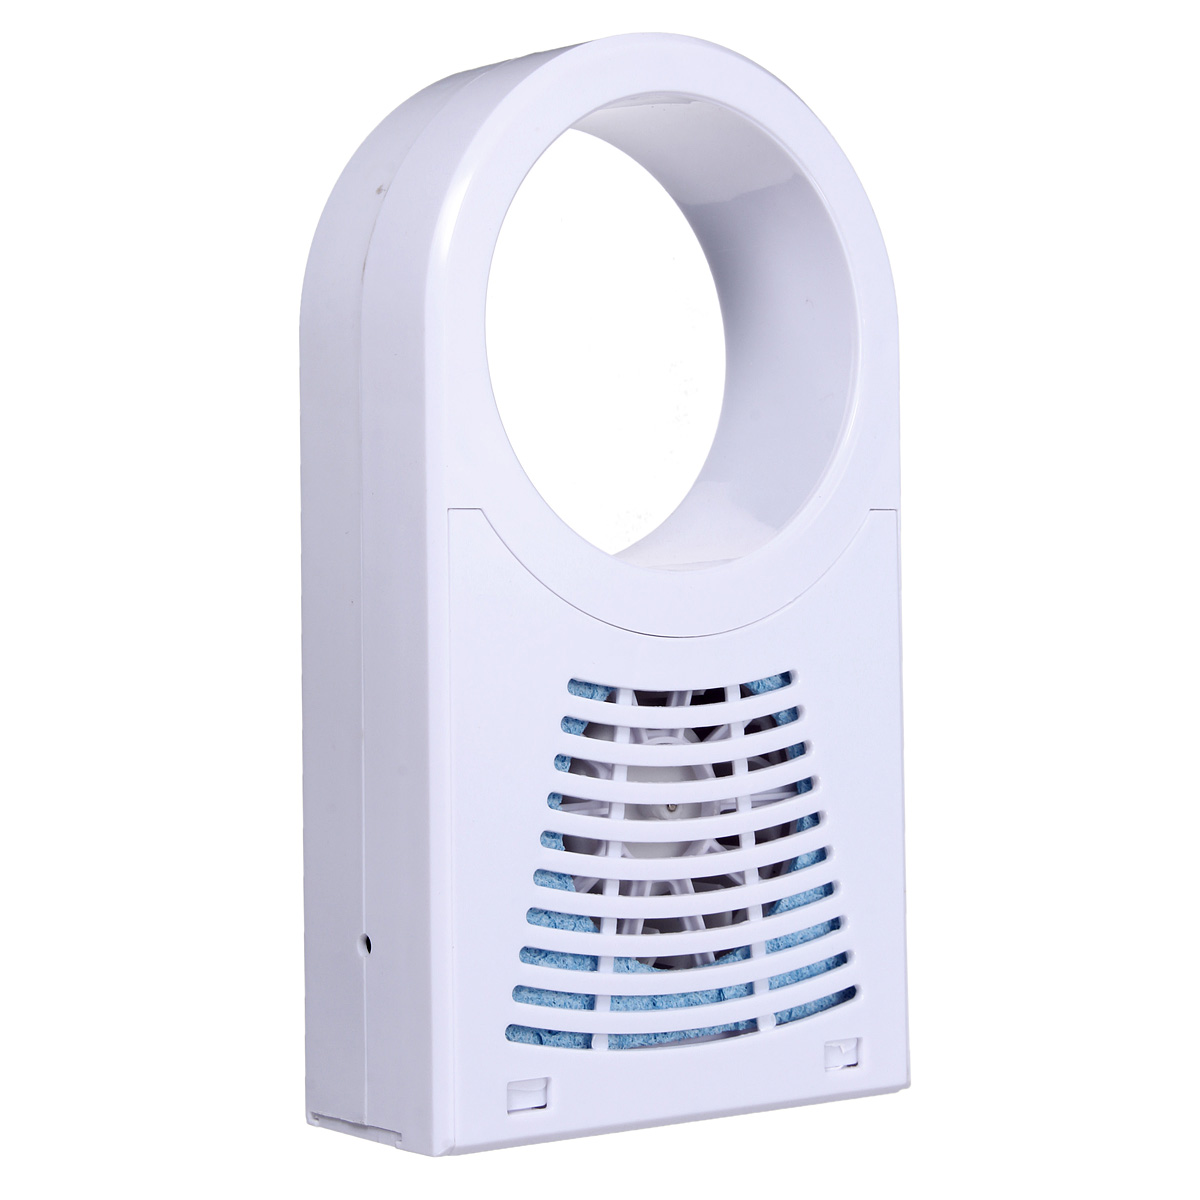 #3E628D No Leaf Mini Handheld Desk Stand Silent Air Conditioner  Brand New 11701 Desk Air Conditioner images with 1200x1200 px on helpvideos.info - Air Conditioners, Air Coolers and more